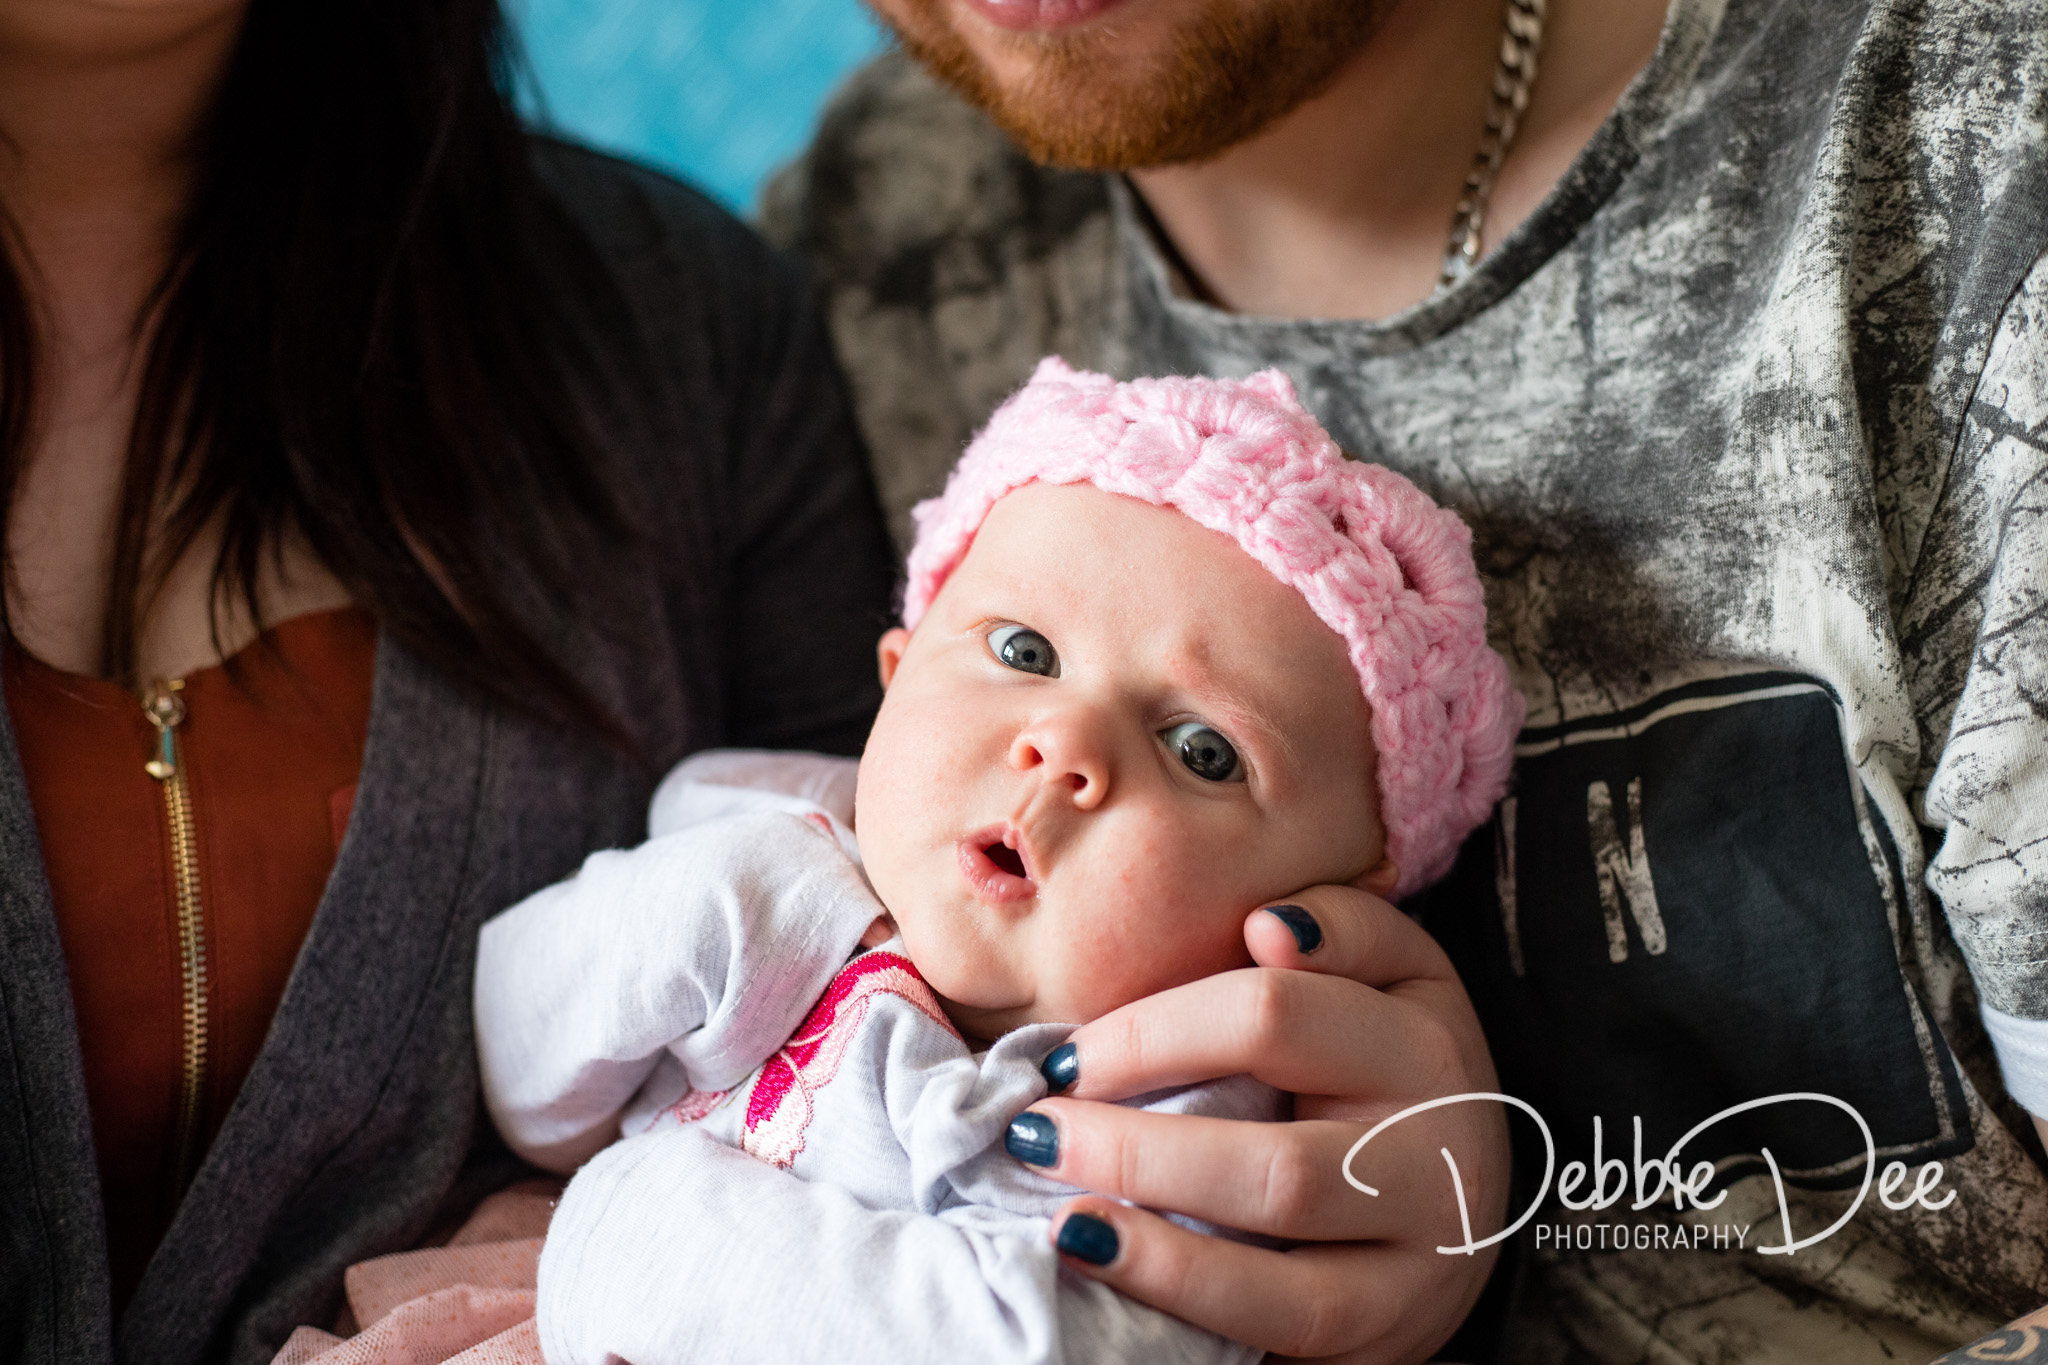 Family photography in-home lifestyle session aberdeenshire Debbie Dee Photography cute baby face